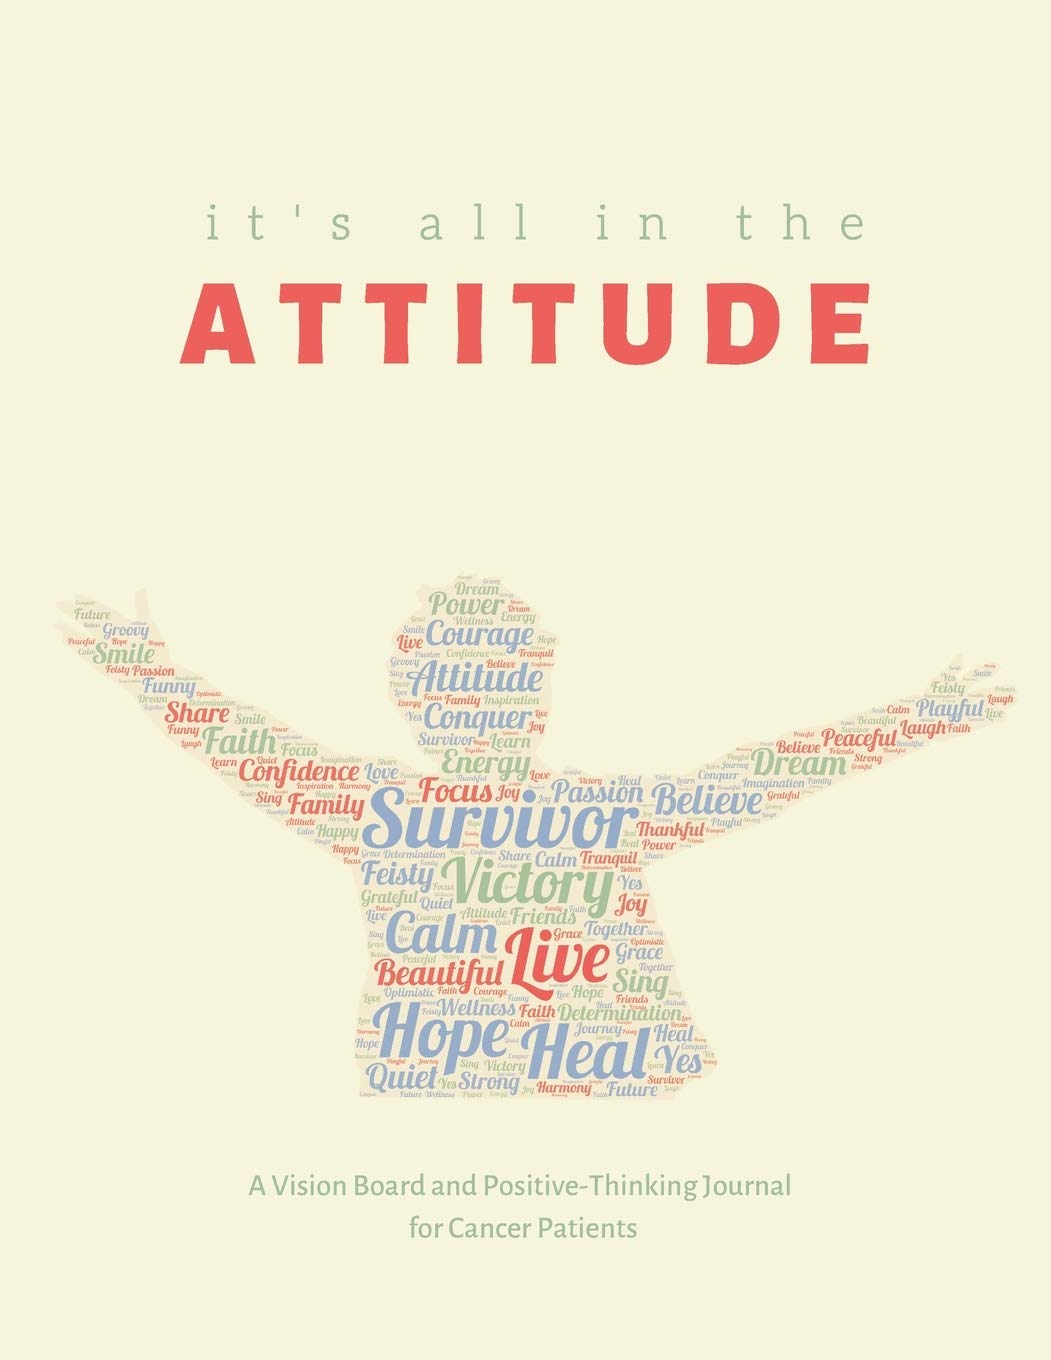 It's All in the Attitude: A Vision Board and Positive-Thinking Journal for Cancer Patients